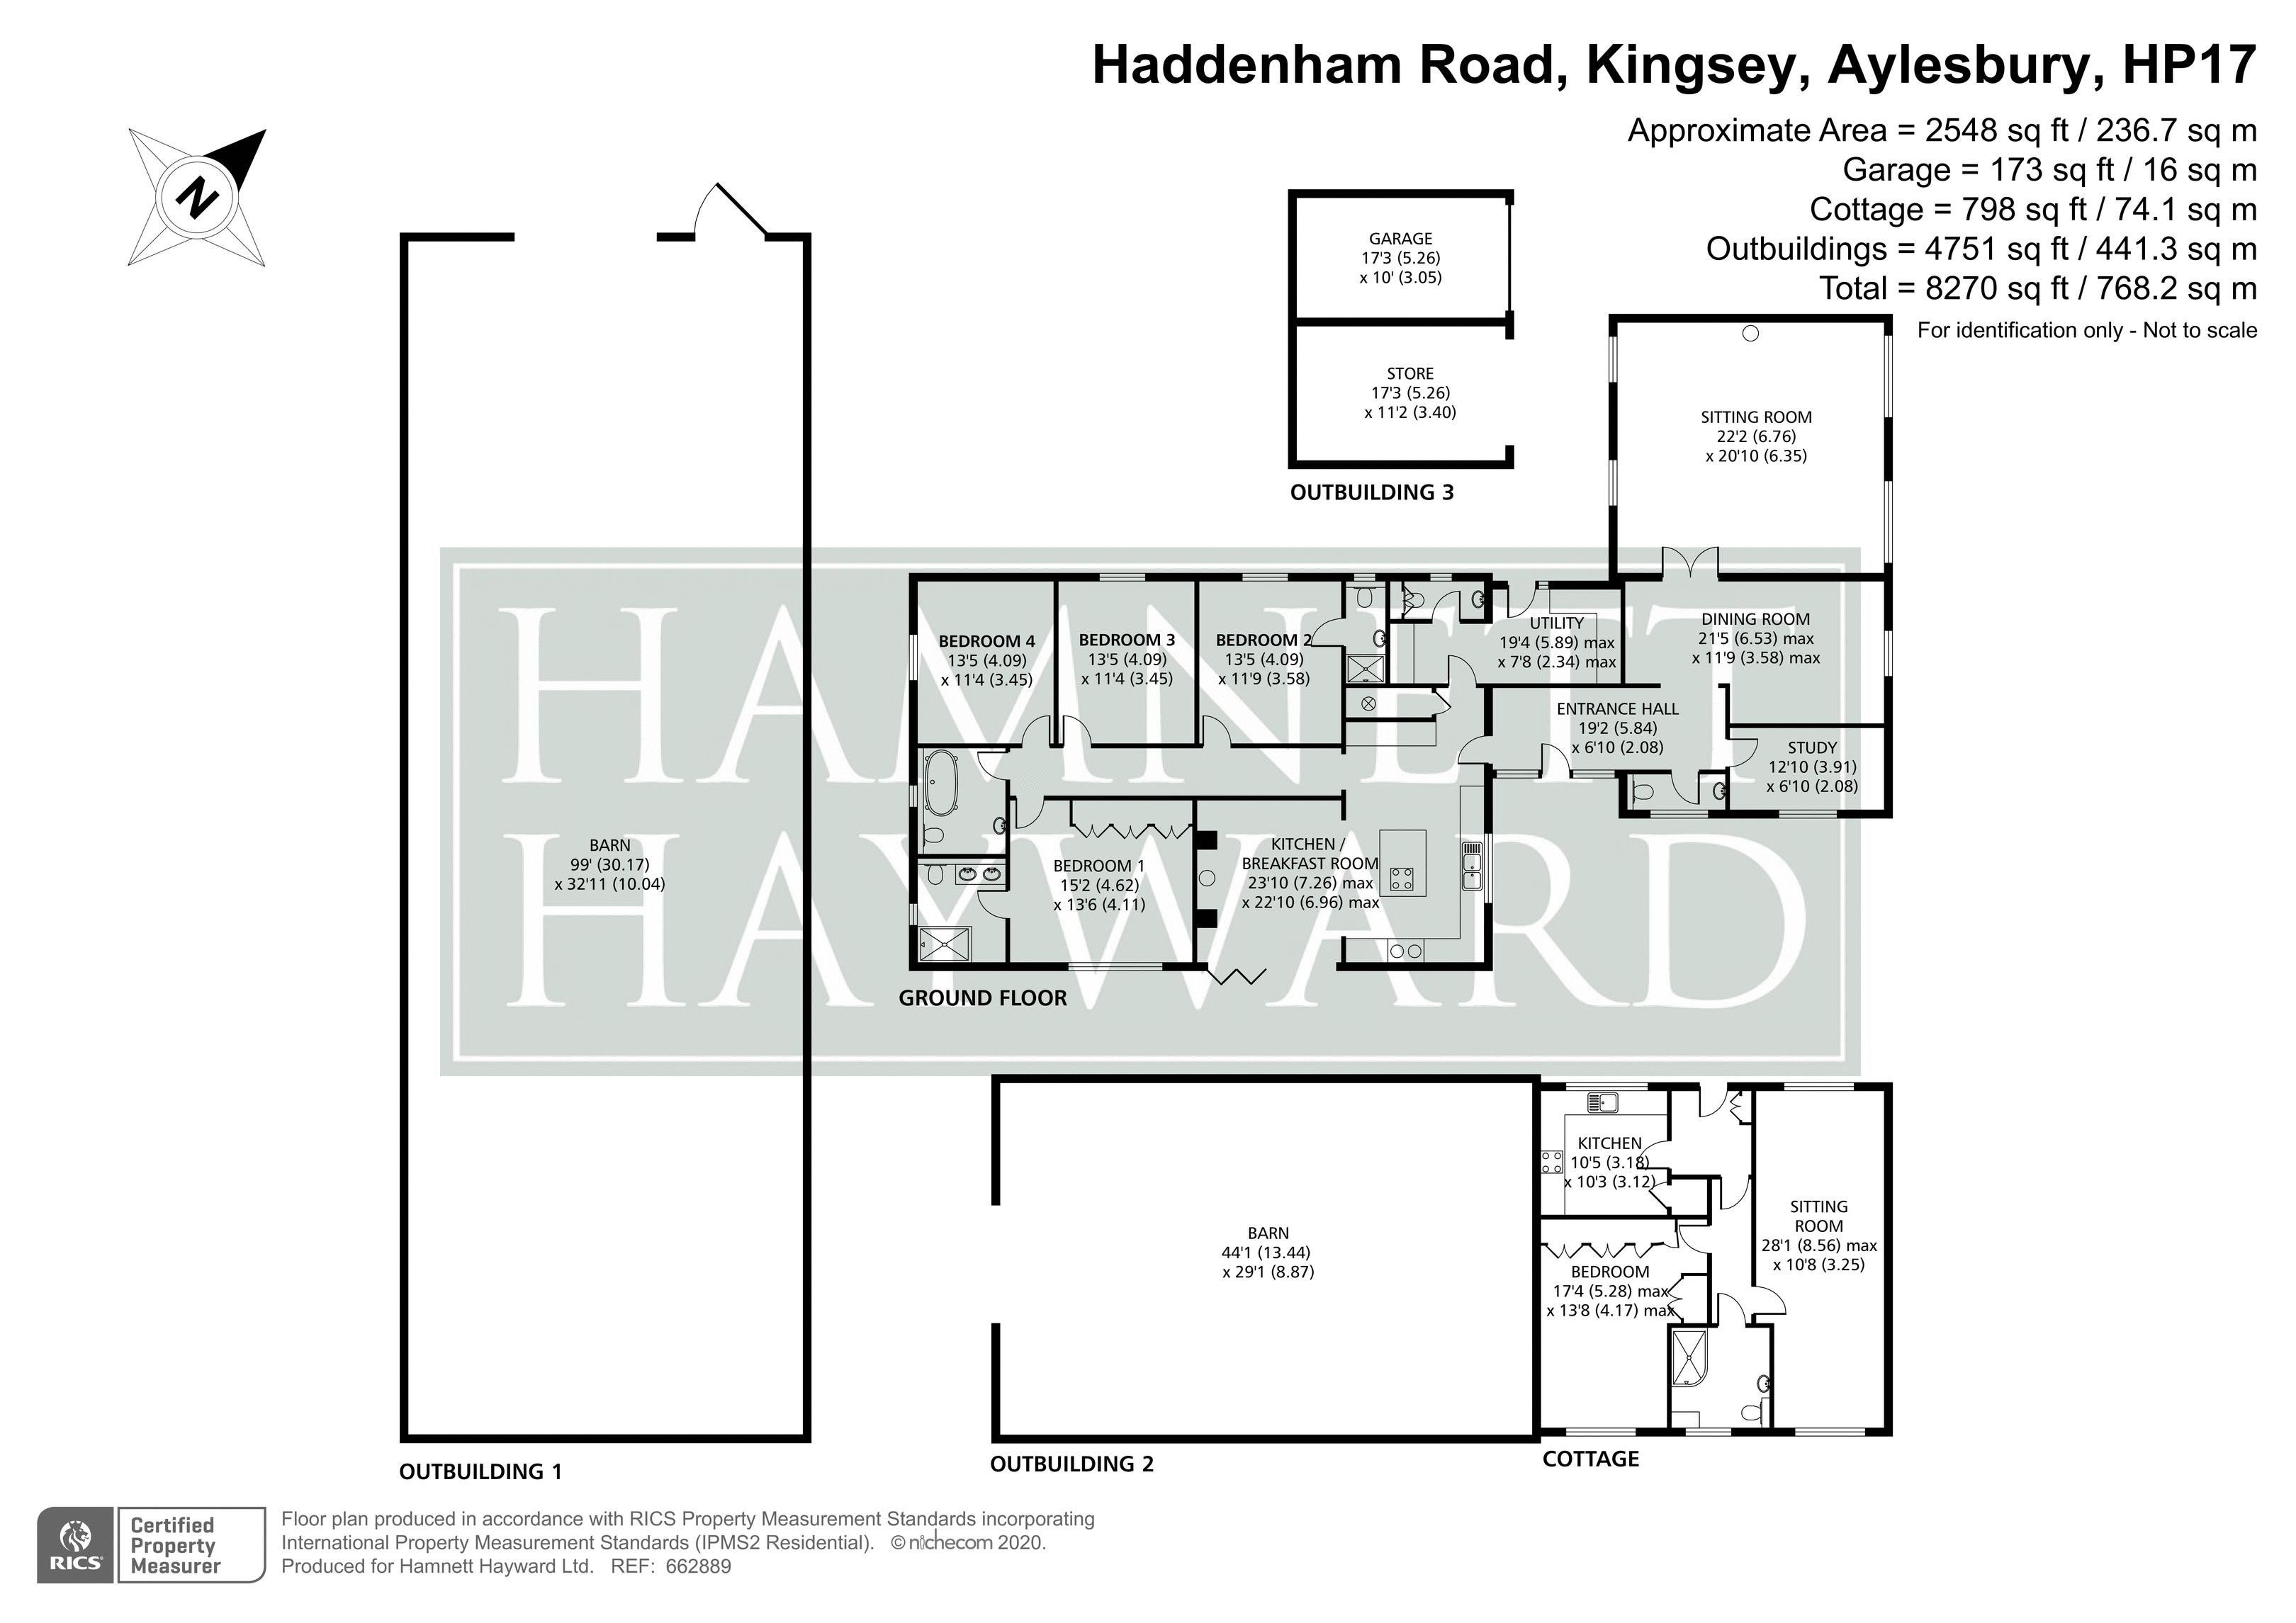 Haddenham Road Kingsey